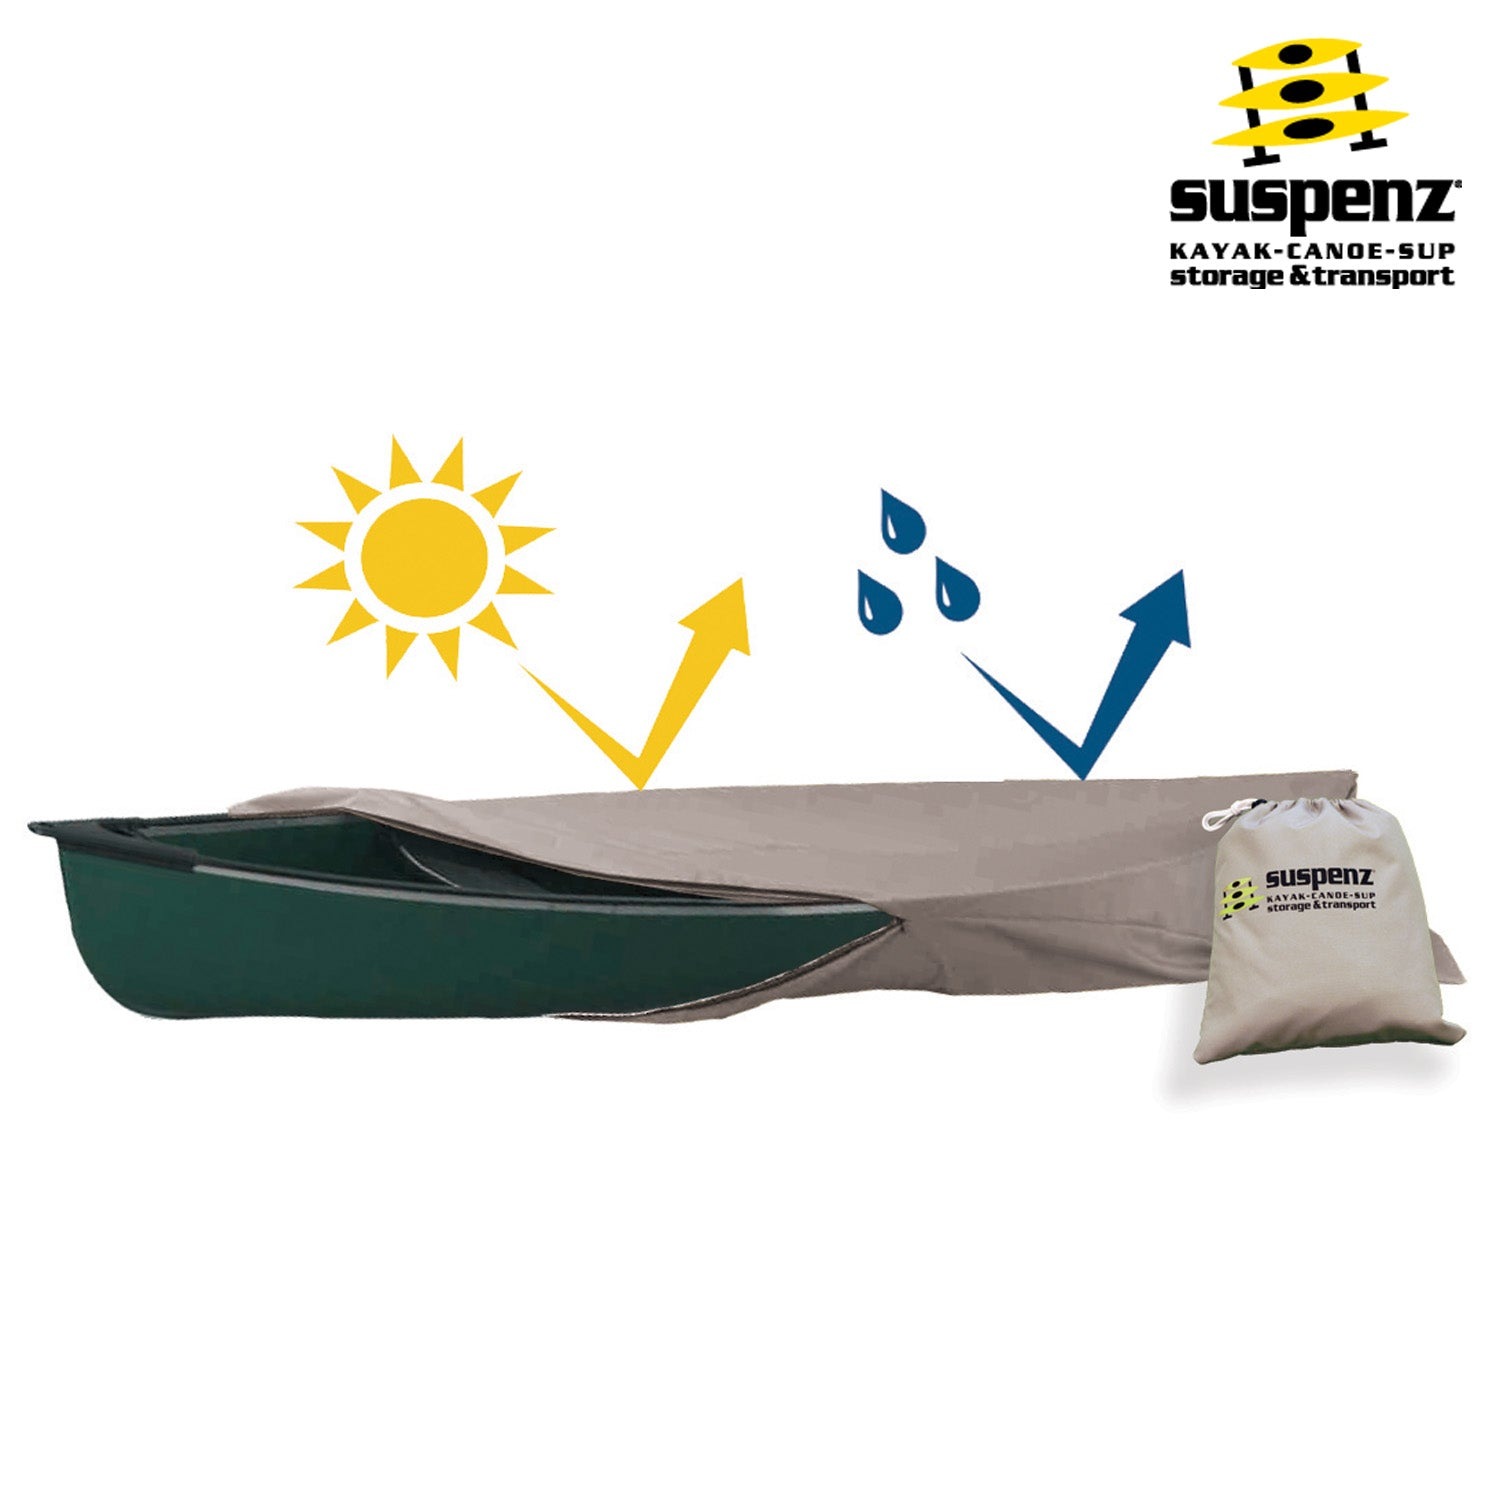 Suspenz Kayak /& Canoe Storage Cover